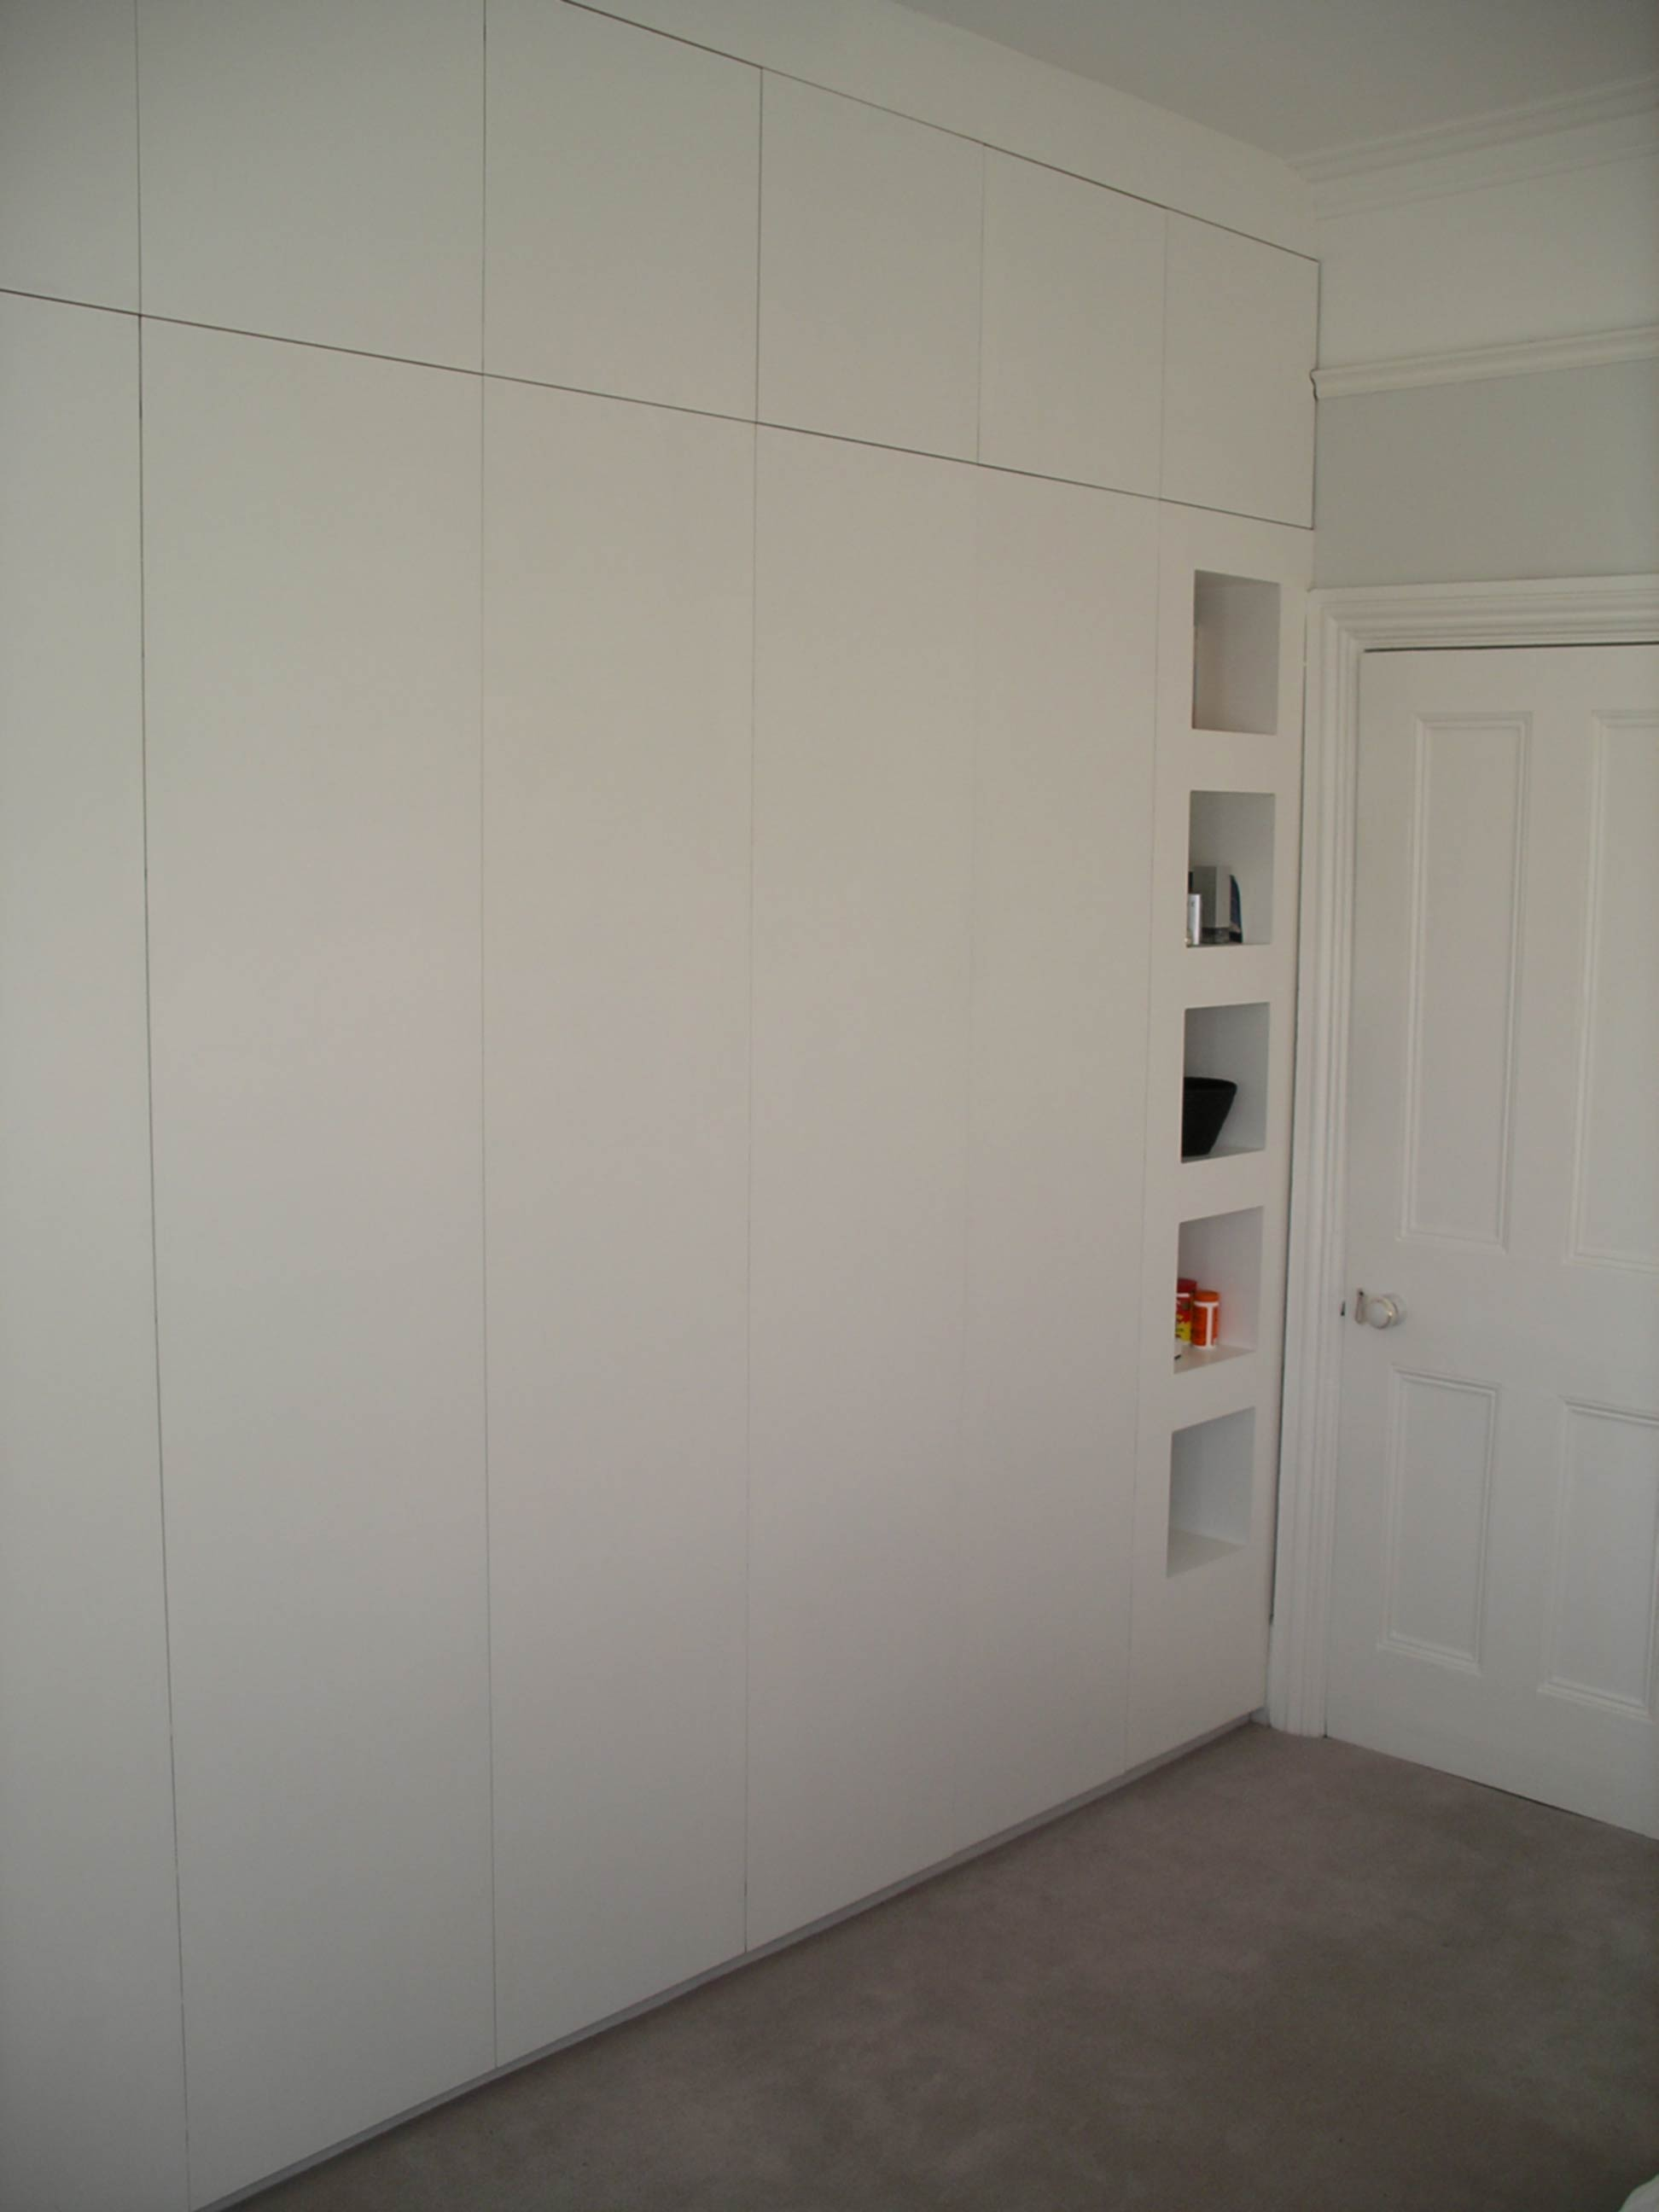 Wall To Wall Wardrobe By Peter Henderson Furniture Brighton Uk